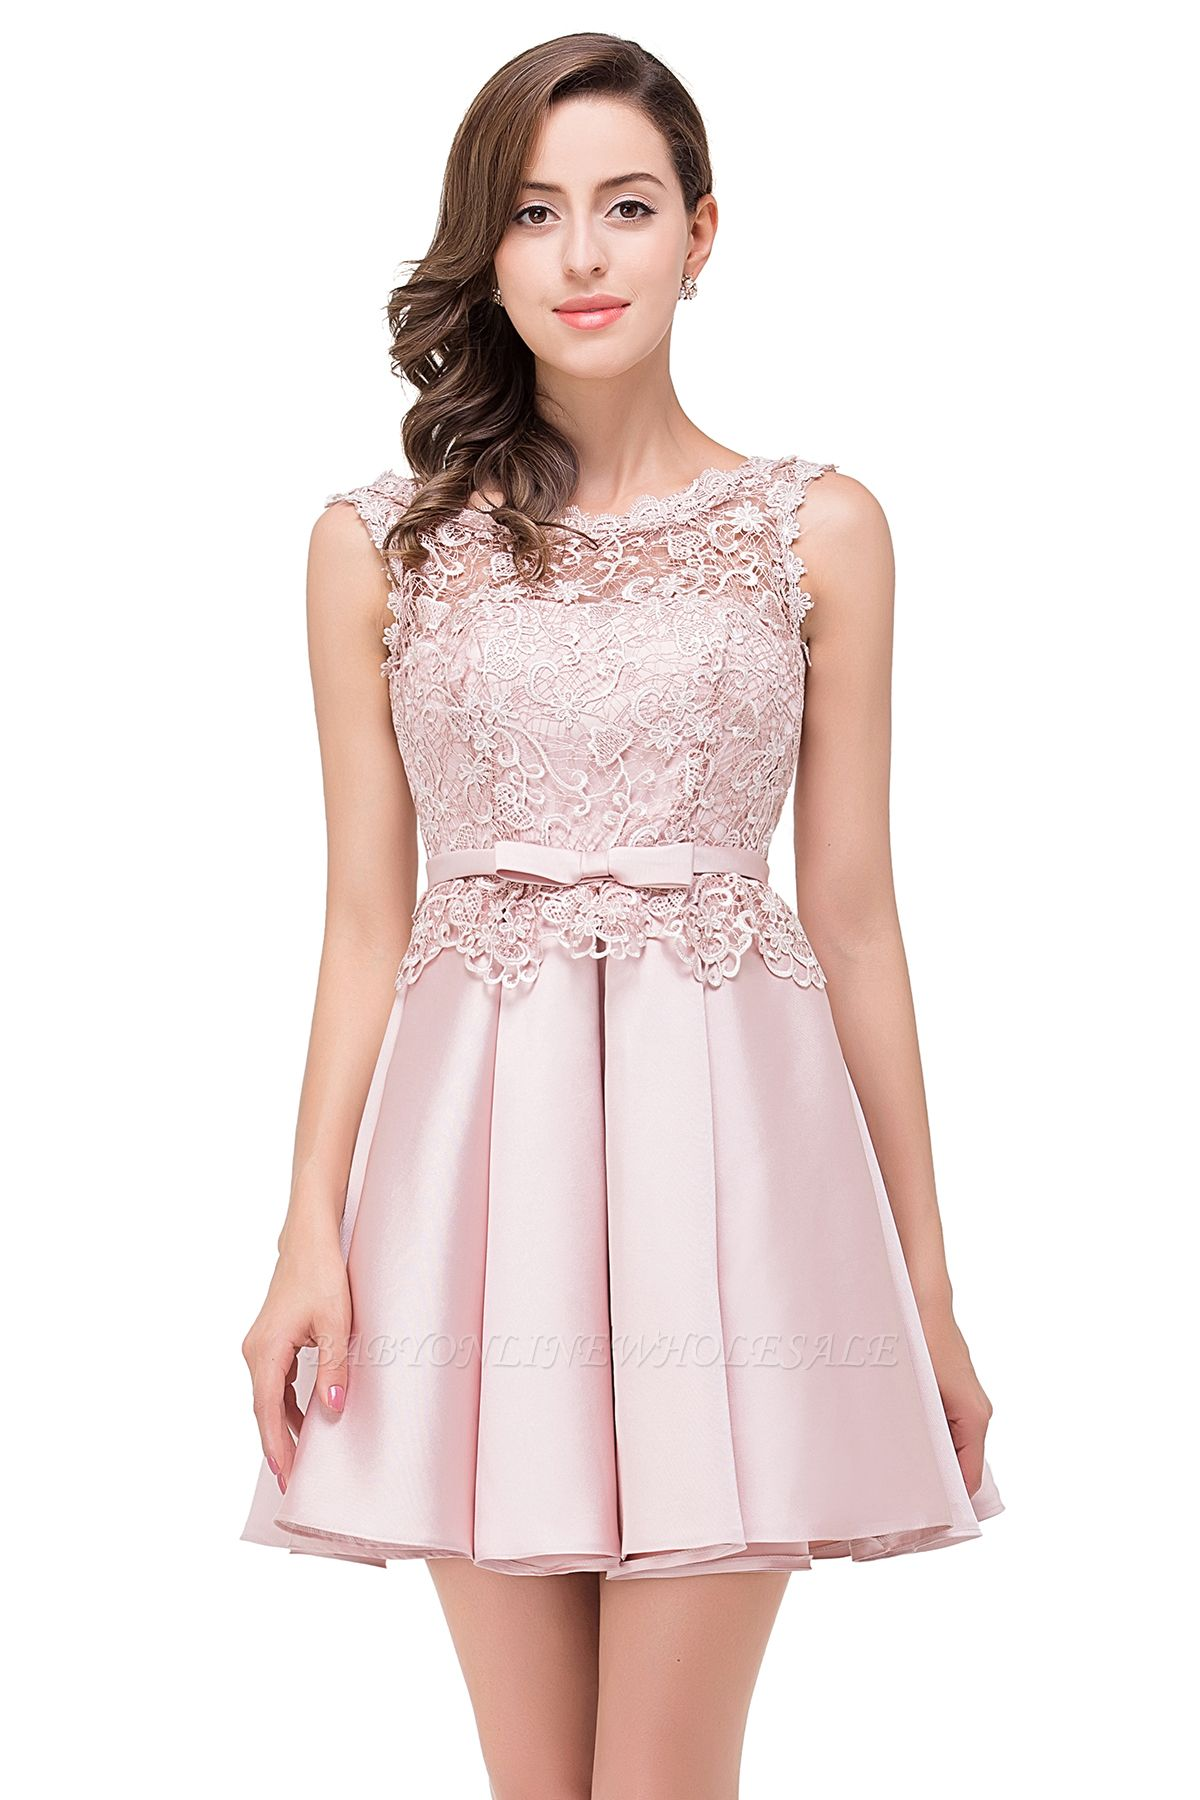 ADELAIDE | A-line Knee-length Satin Homecoming Dress with Lace